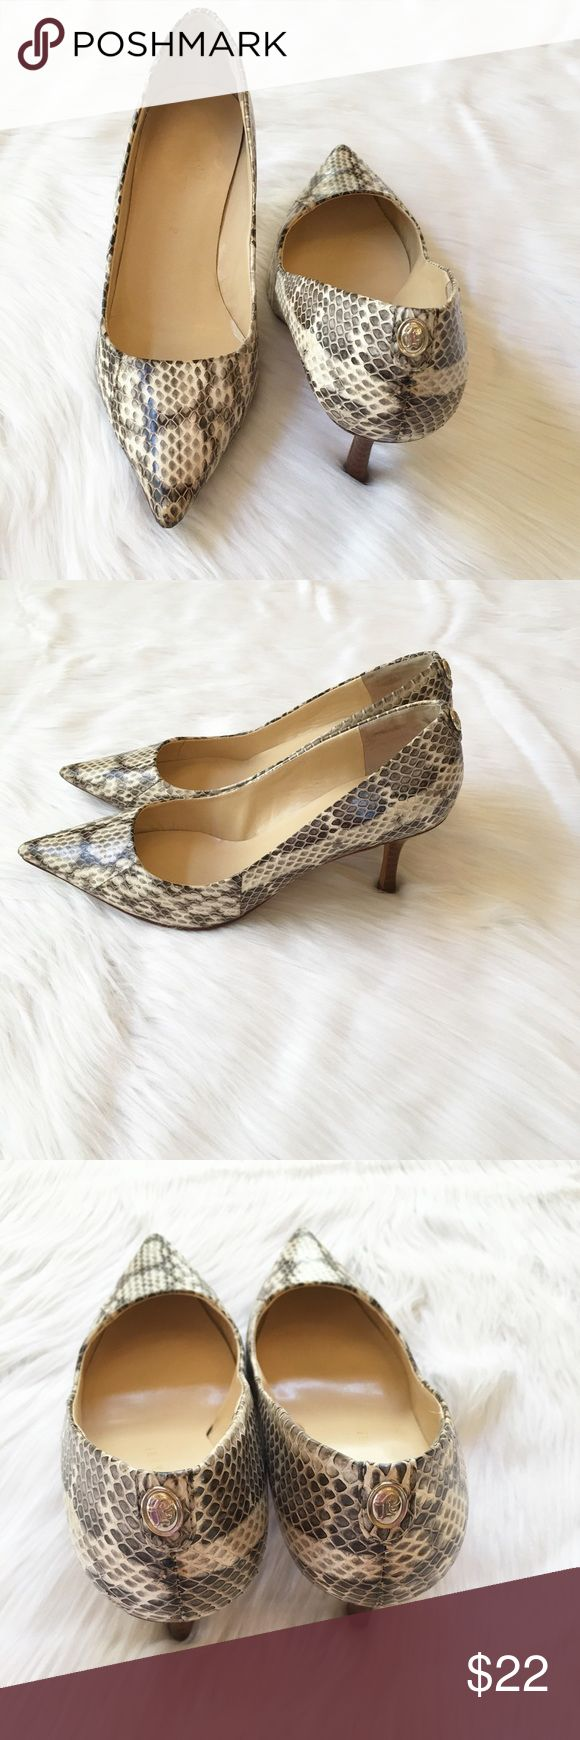 """Ivanka Trump Pumps This is a pair of Ivanka Trump pumps in used condition. They are a snake skin print leather upper with a leather sole. Only visible wear is on the bottom and a small scuff on the tip of the toes (as seen in picture above). Heel height is 2"""". ⚜Please see my """"reasonable offers"""" listing at the top of my page before submitting an offer⚜Thank you😊 Ivanka Trump Shoes Heels"""